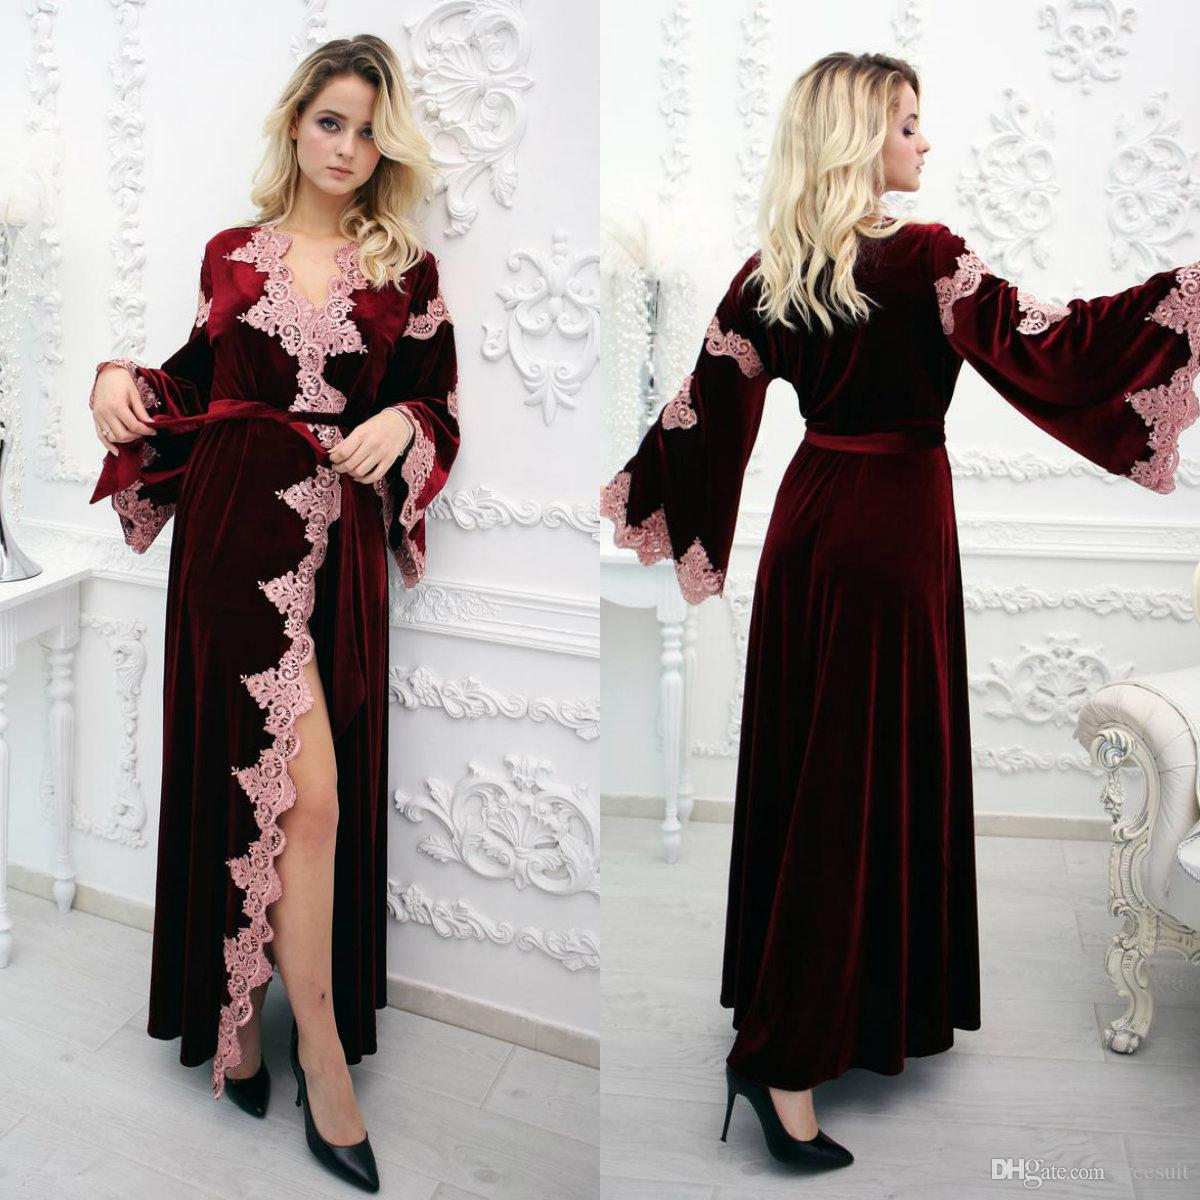 Burgundy Wedding Robes Long Sleeves Lace Appliqued Velvet Bathrobe Formal Night Gowns For Women Custom Made Cozy Sleepwear Winter Bridesmaid Dresses Alfred Sung Bridesmaid Dresses From Freesuit 59 59 Dhgate Com